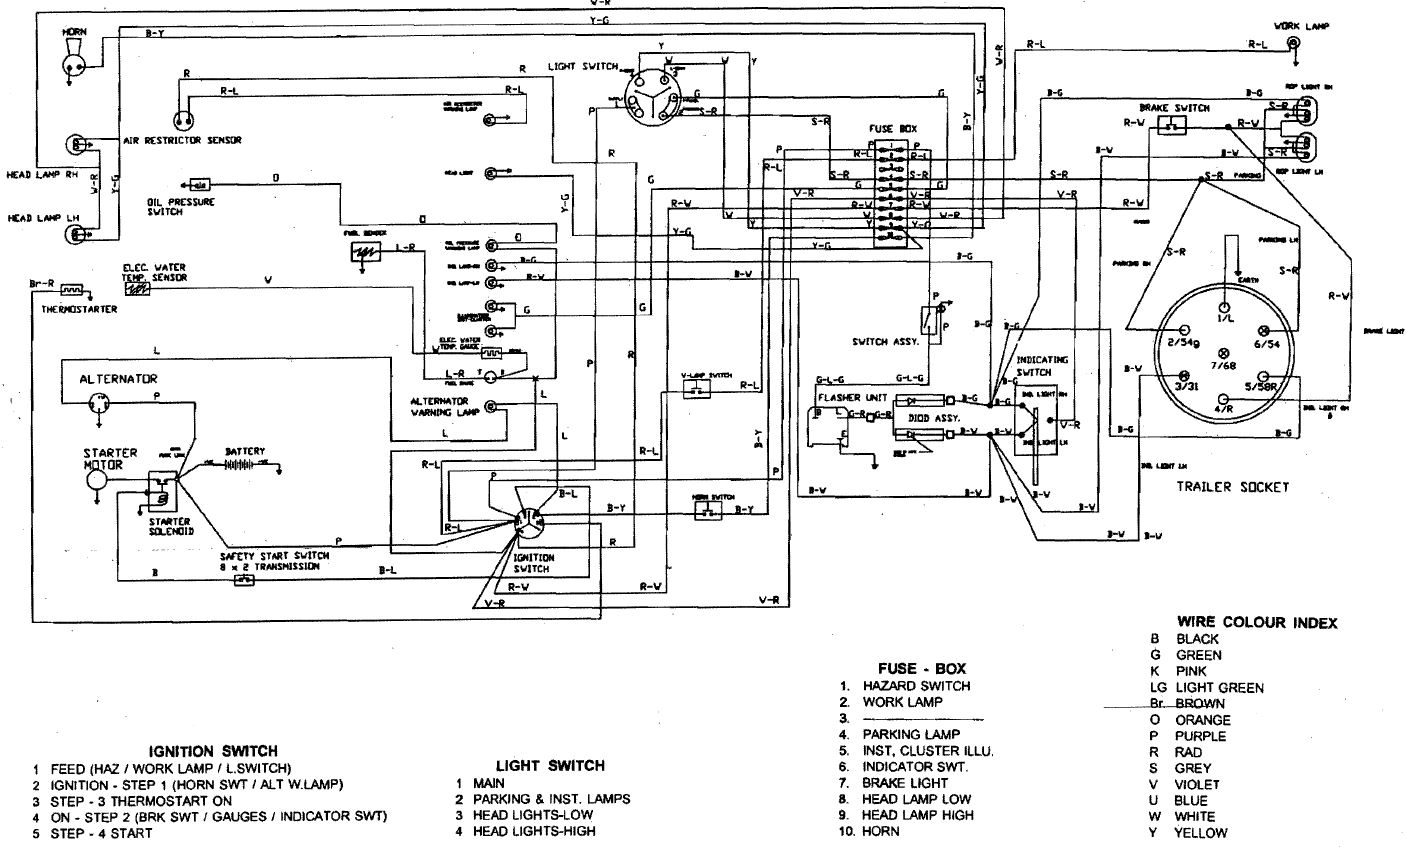 20158463319_b82d524c3d_o ignition switch wiring diagram lawn tractor ignition switch wiring diagram at gsmportal.co